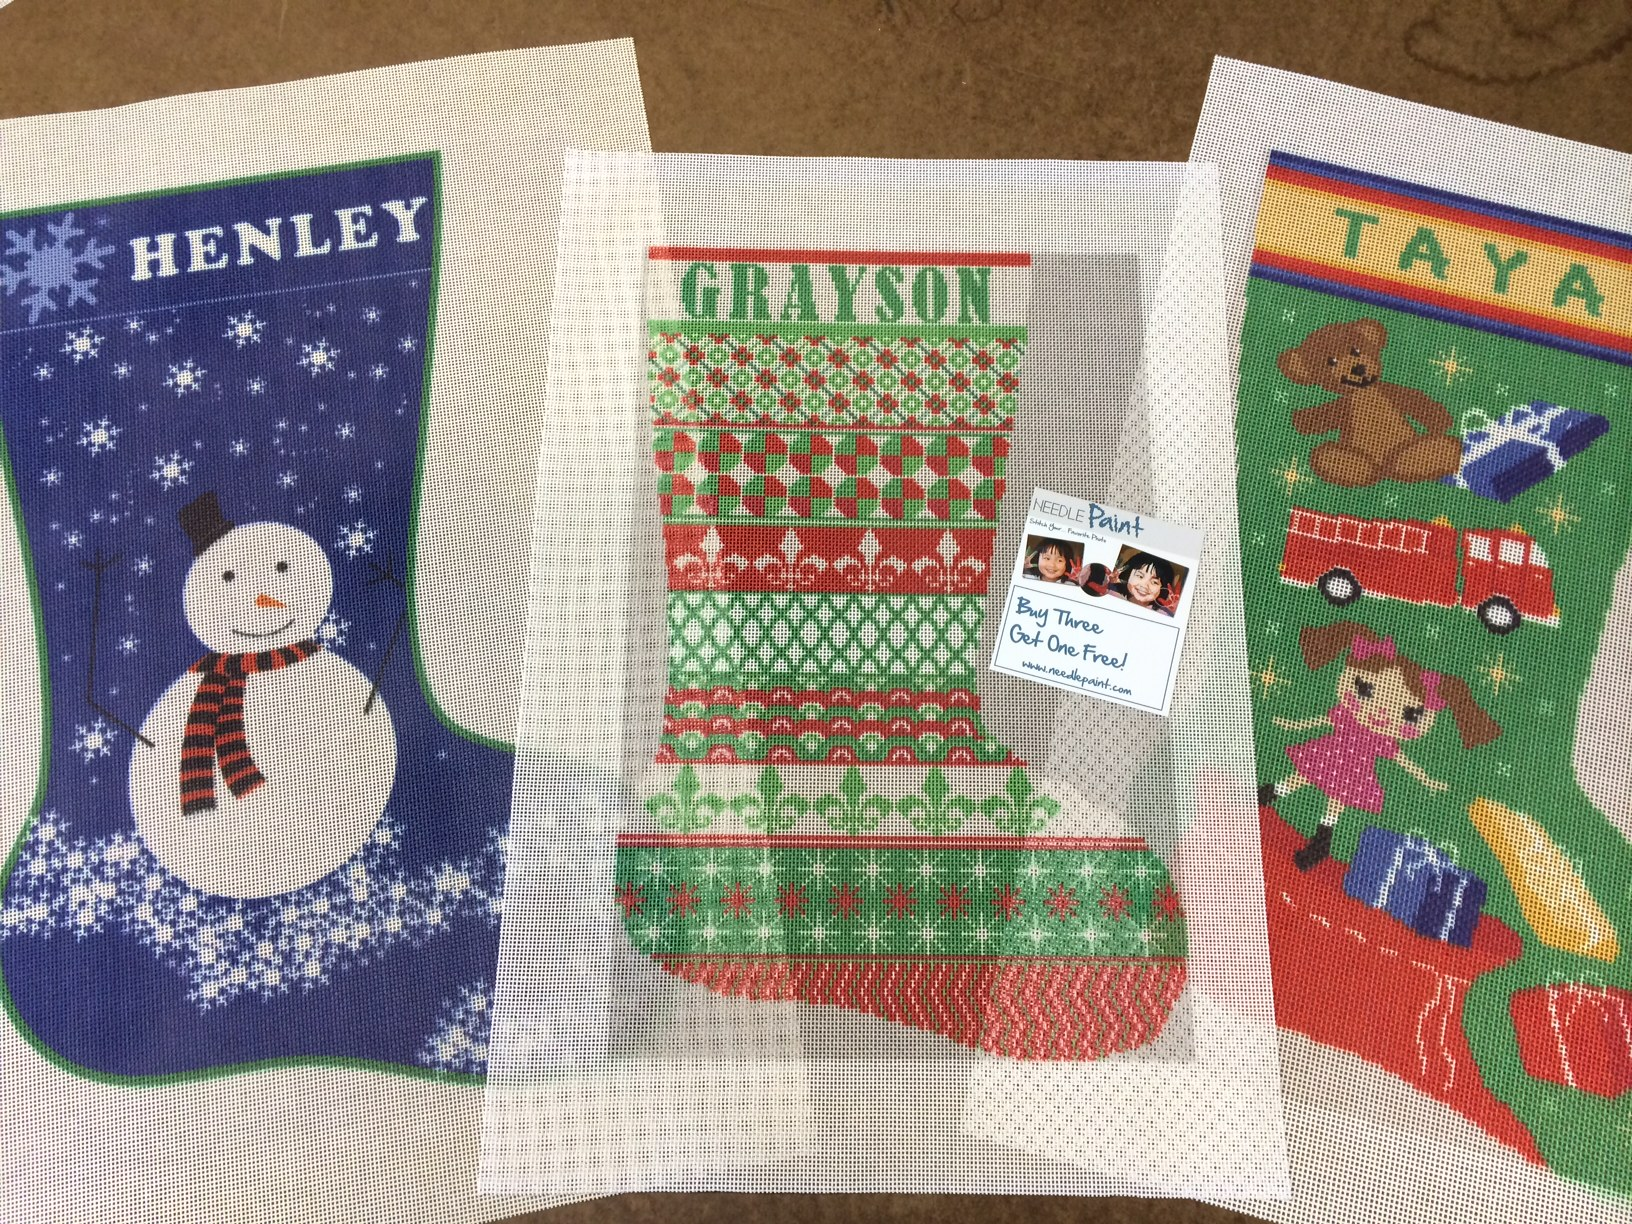 Captivating personalized needlepoint christmas stockings for christmas decorating ideas with needlepoint christmas stockings personalized